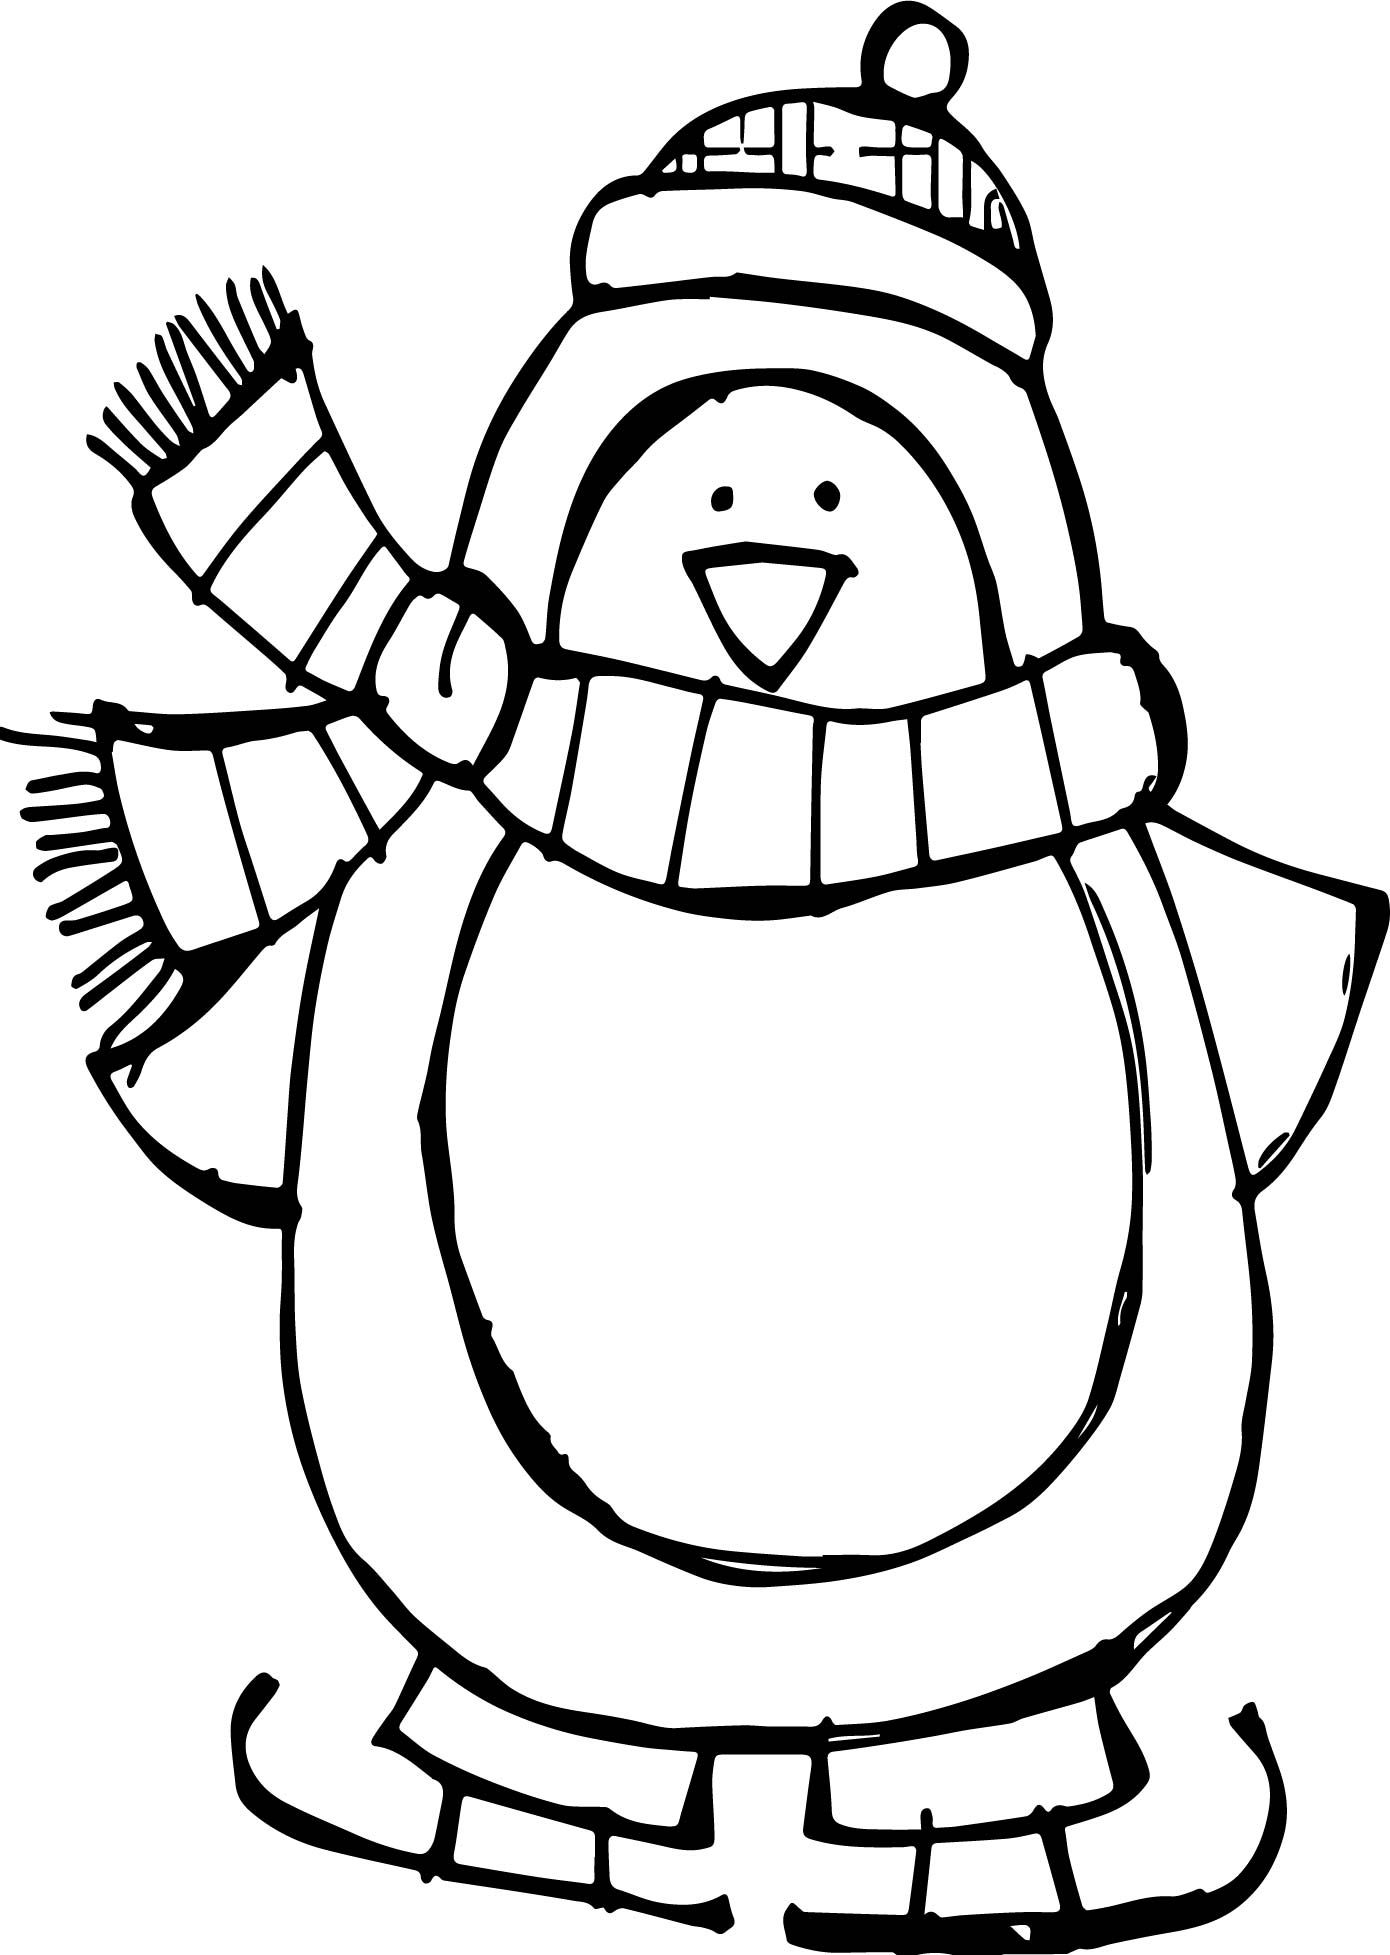 Penguin Colouring Page Use As Basis For Scrunched Tissue Paper